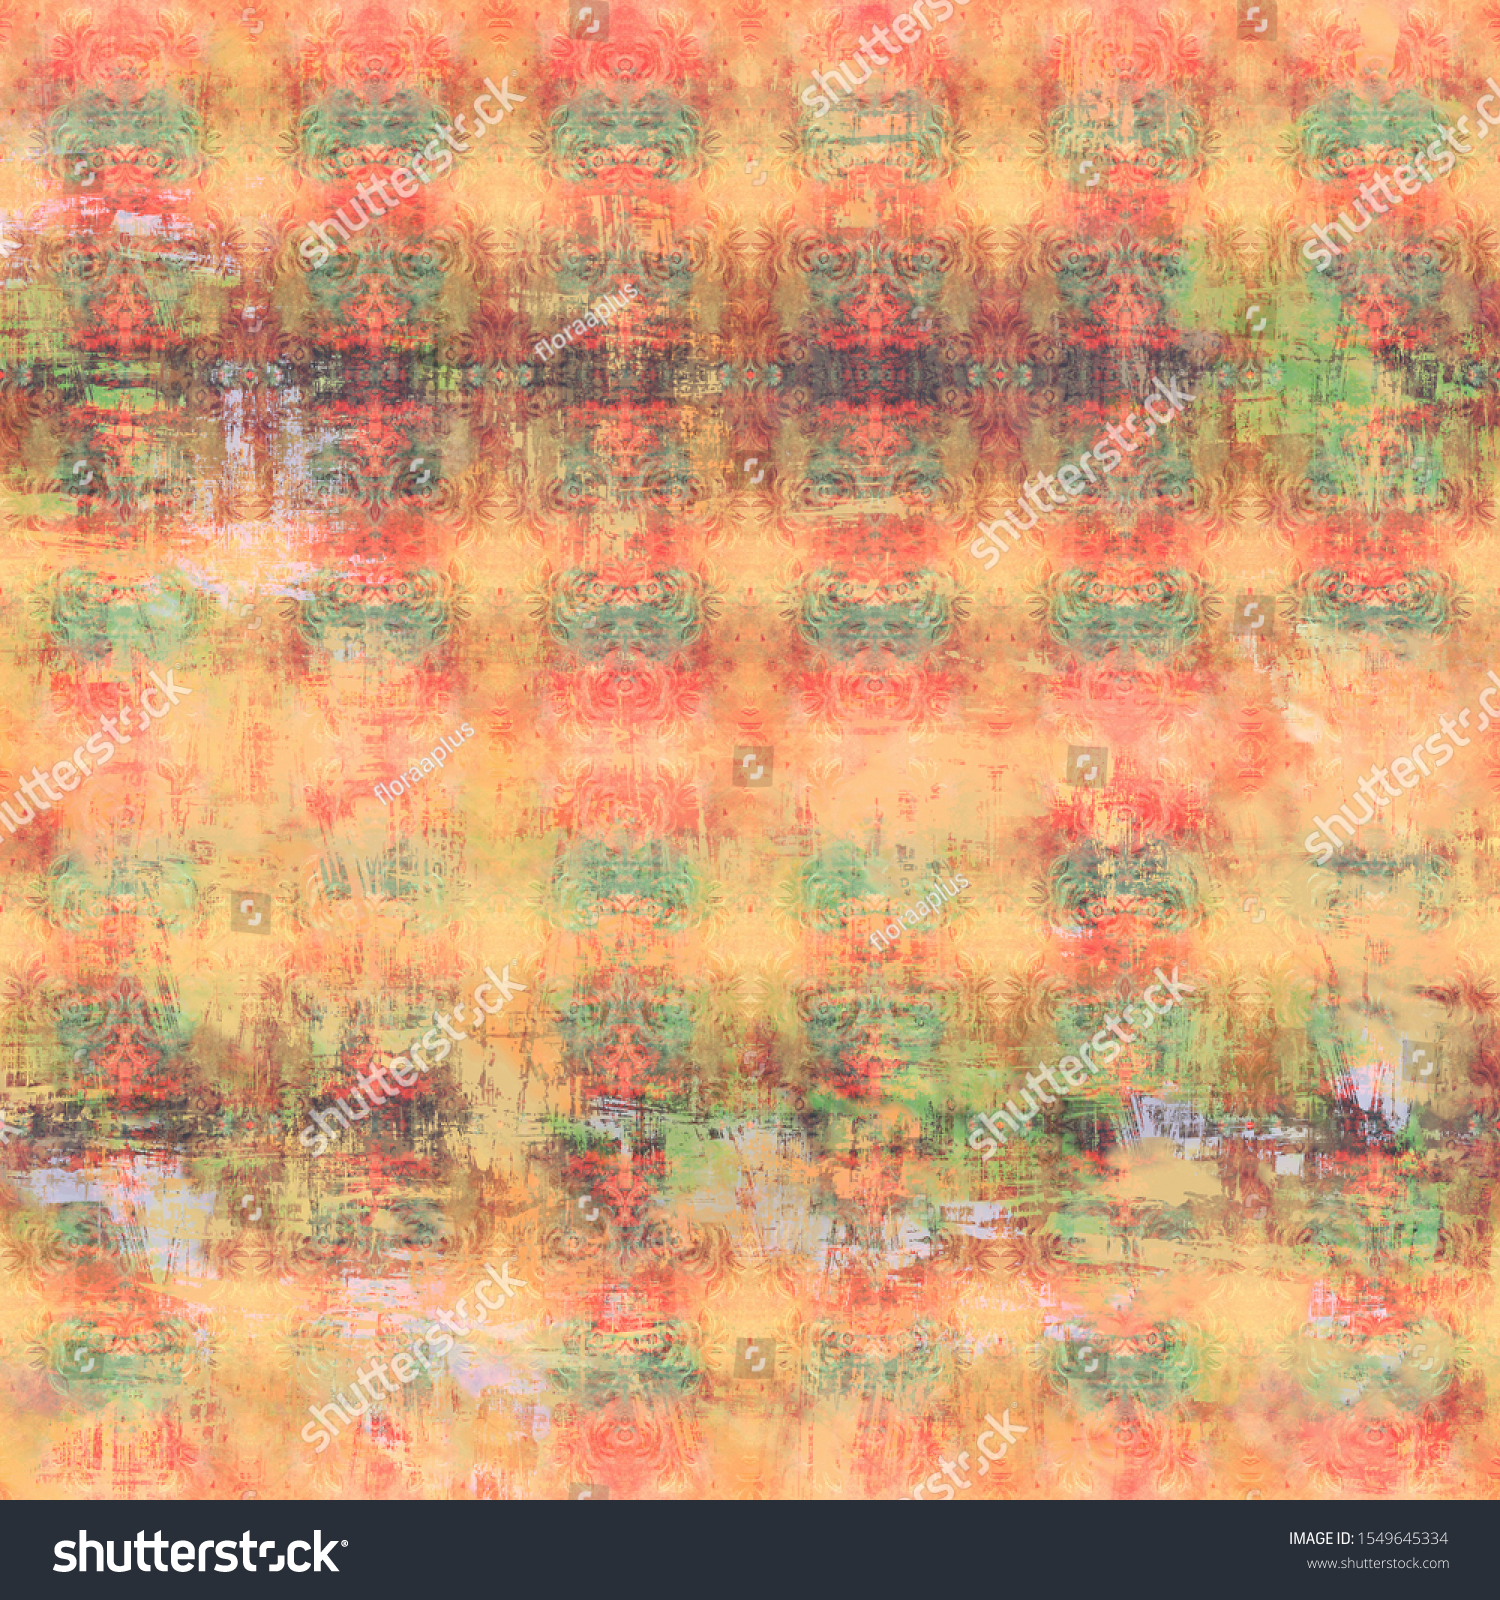 Red-Beige shabby vintage patterned background. Artificially aged bohemian wallpaper in grunge style. Design for handicraft and mass production of various goods.